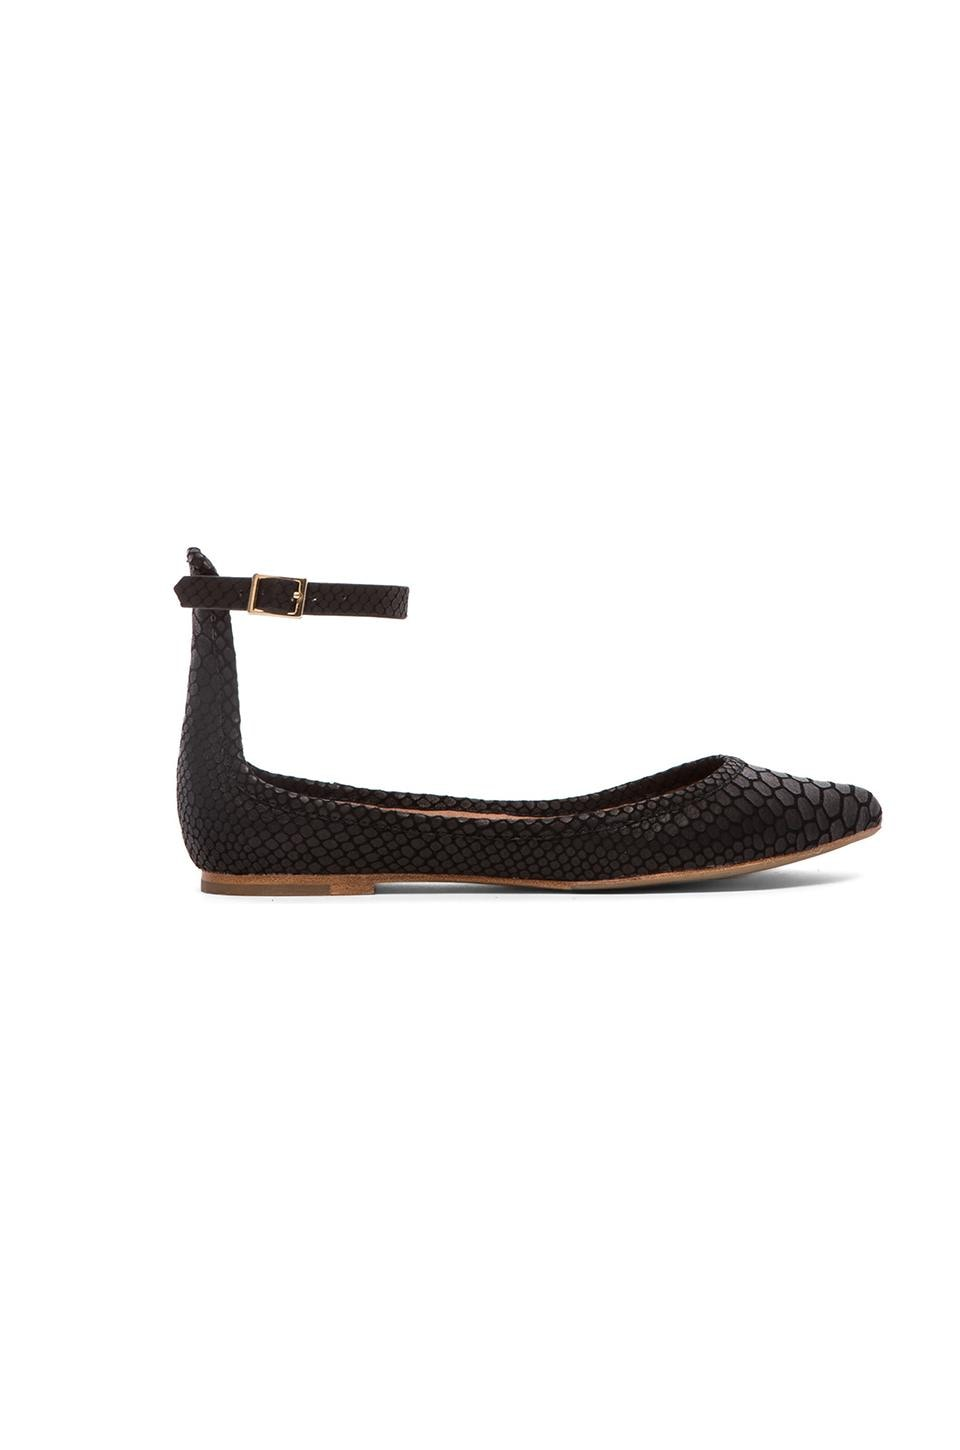 Joie Temple Flat in Black